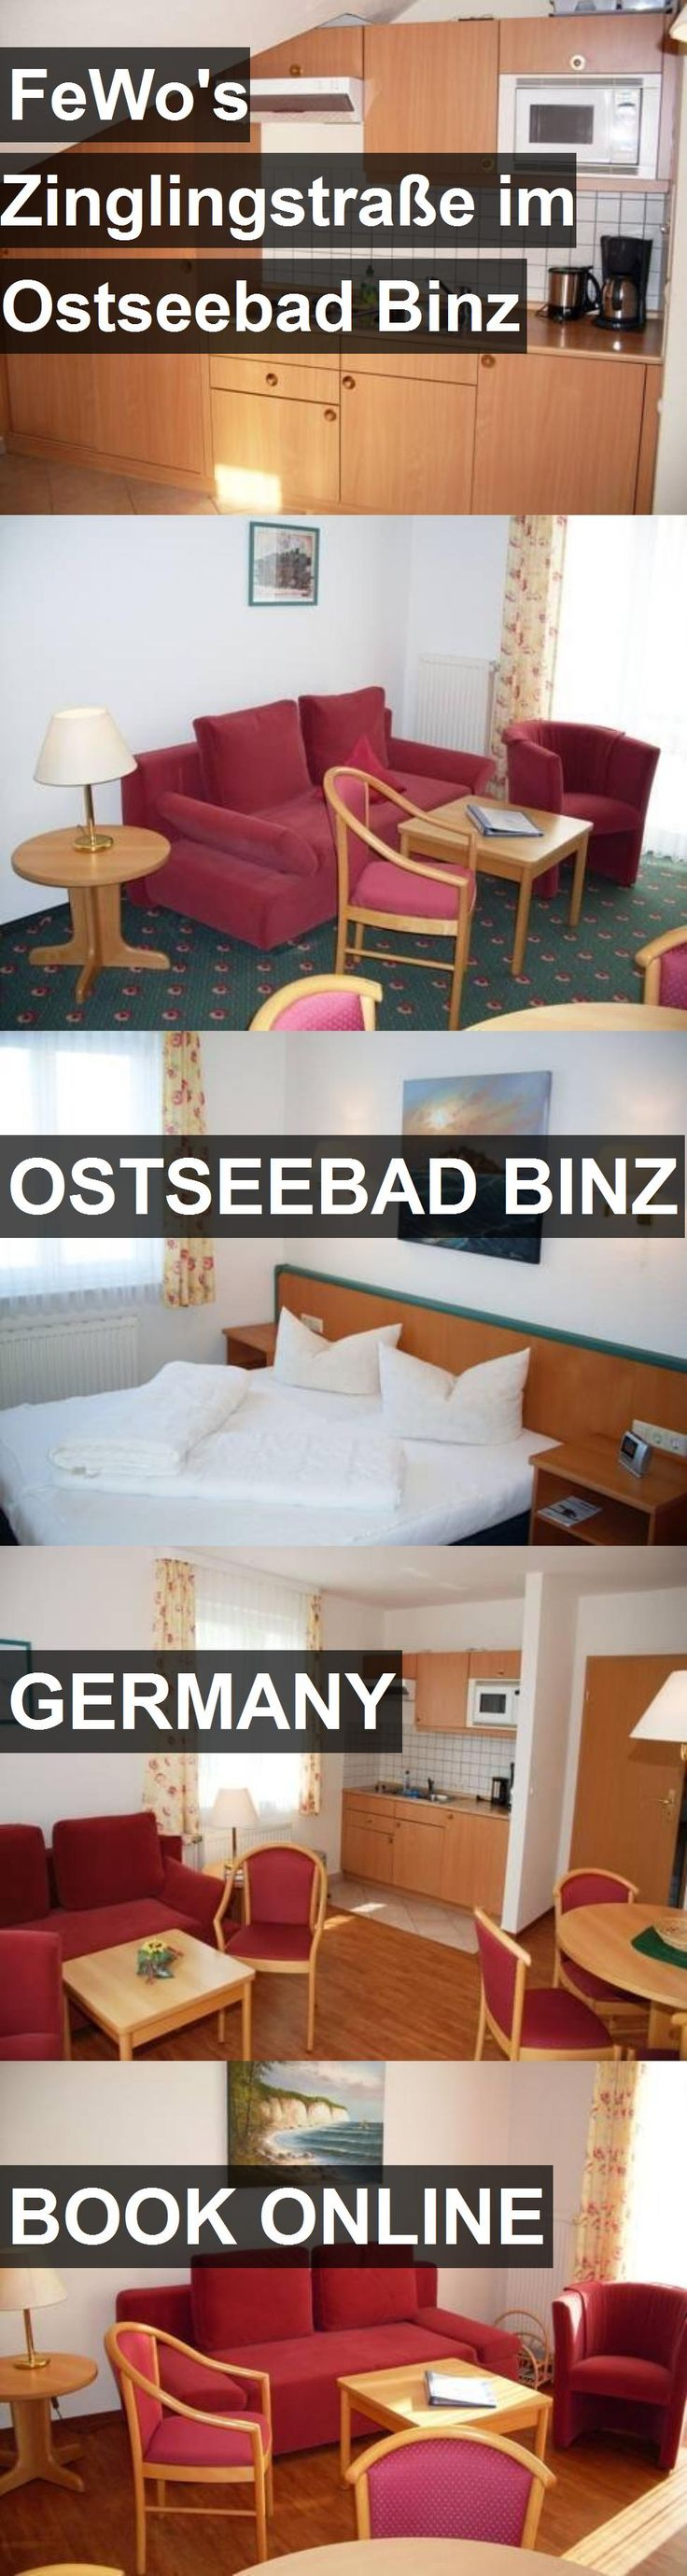 Hotel FeWo's Zinglingstraße im Ostseebad Binz in Ostseebad Binz, Germany. For more information, photos, reviews and best prices please follow the link. #Germany #OstseebadBinz #travel #vacation #hotel